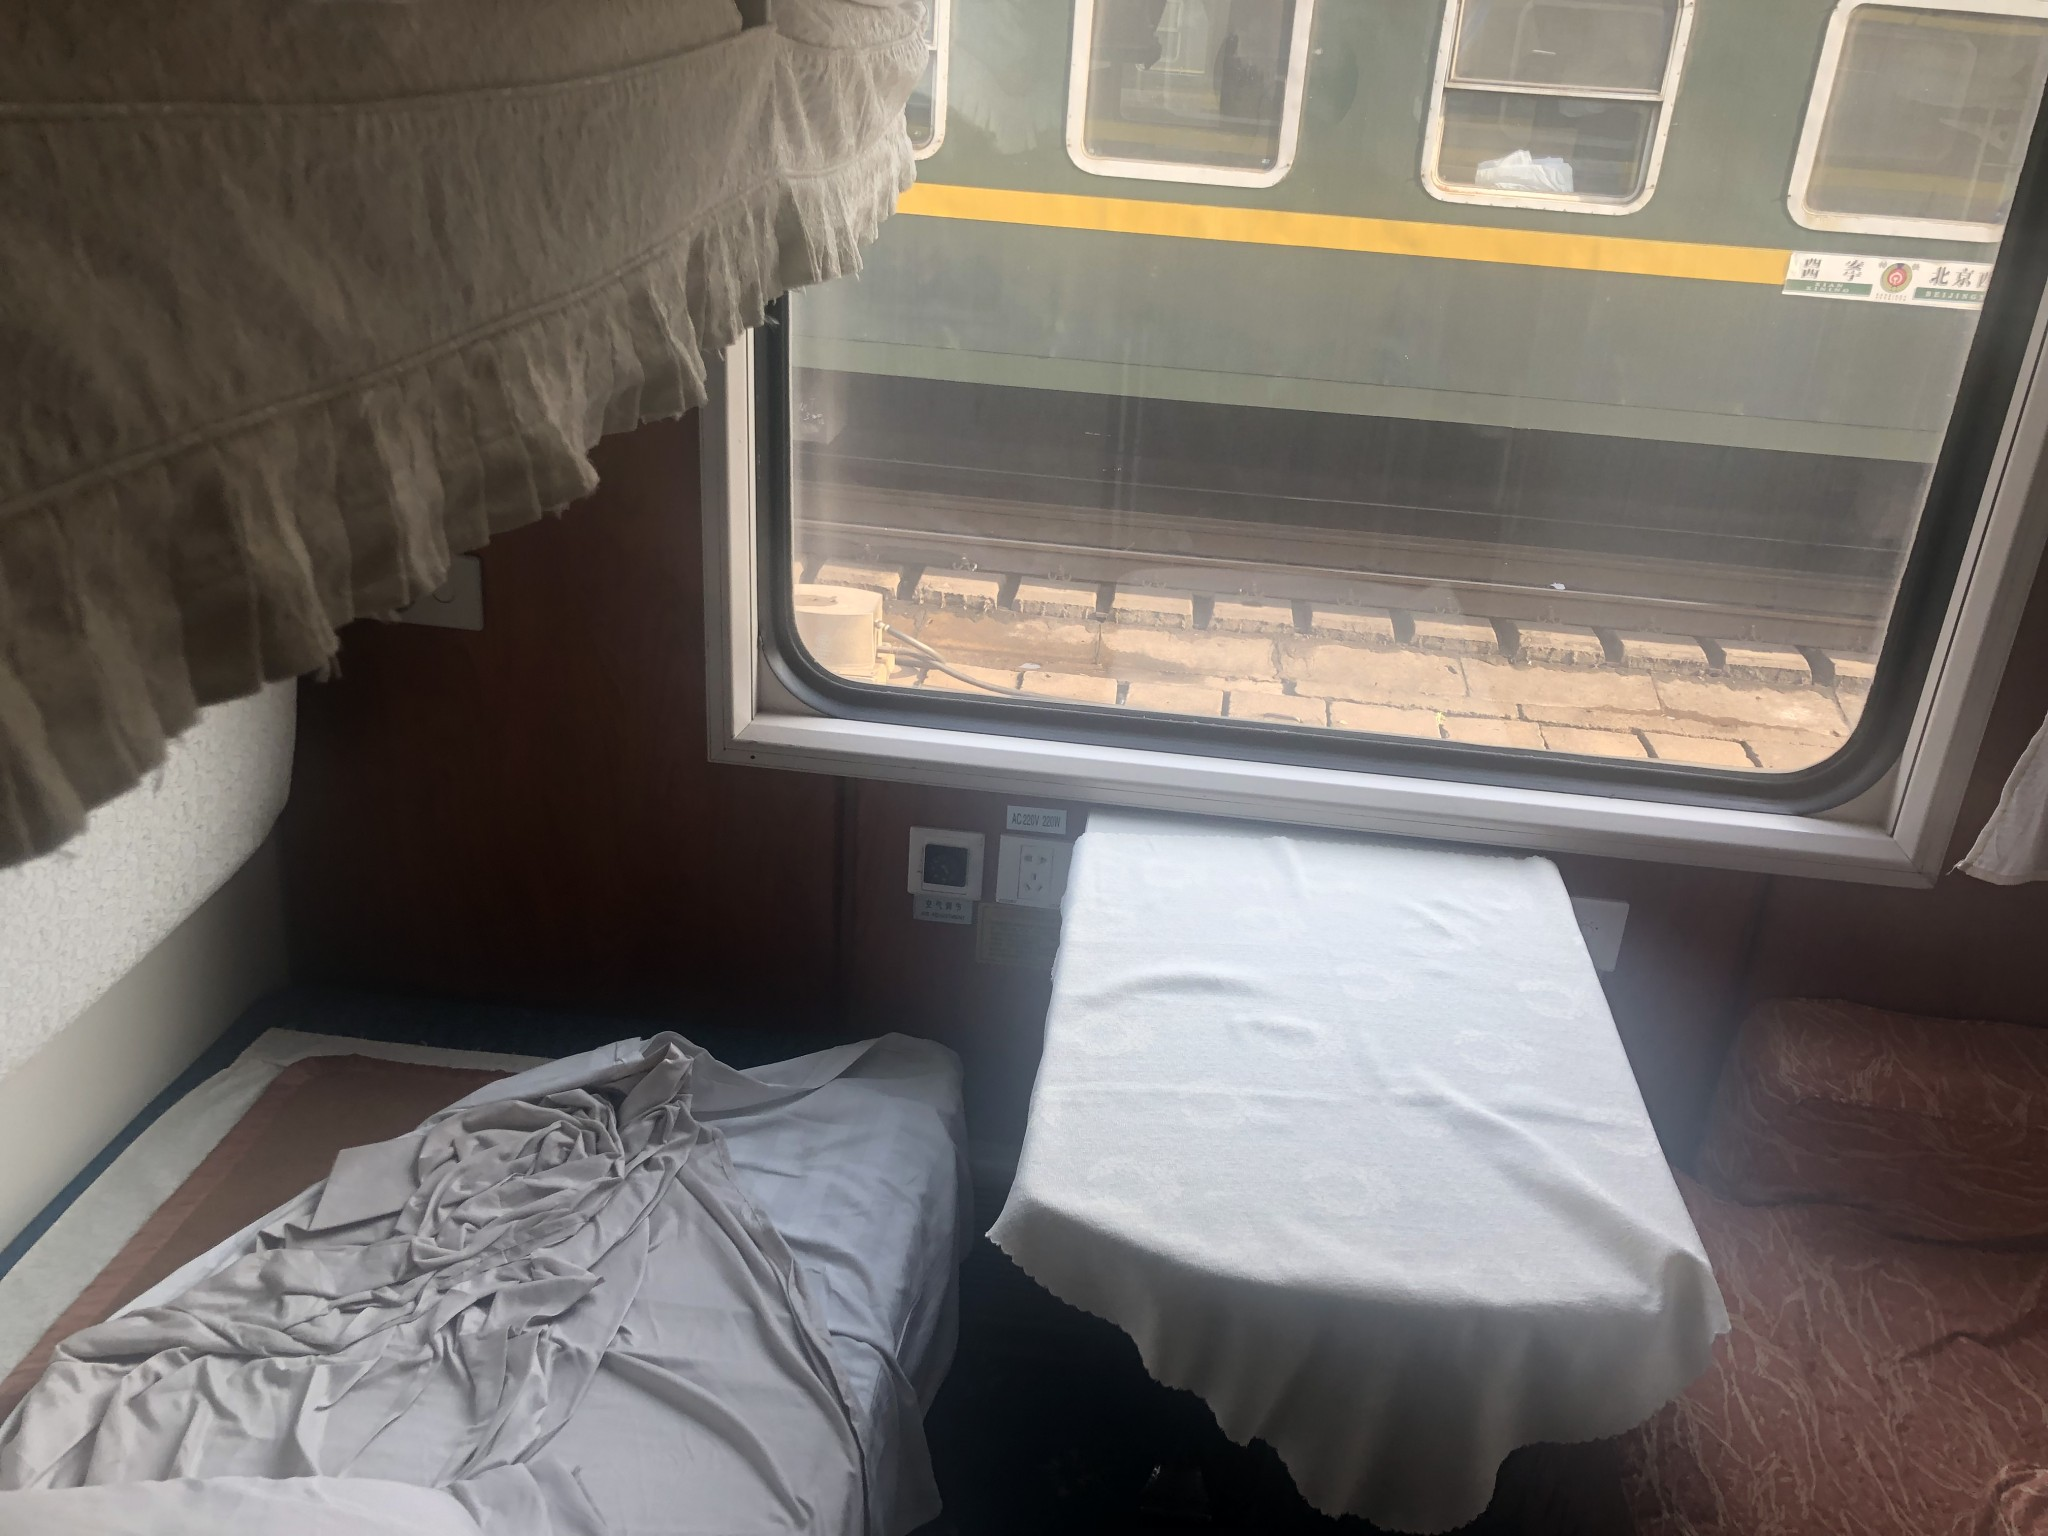 Taking the overnight Beijing to Xian train – the Deluxe Soft Sleeper on the Z19 train [video]